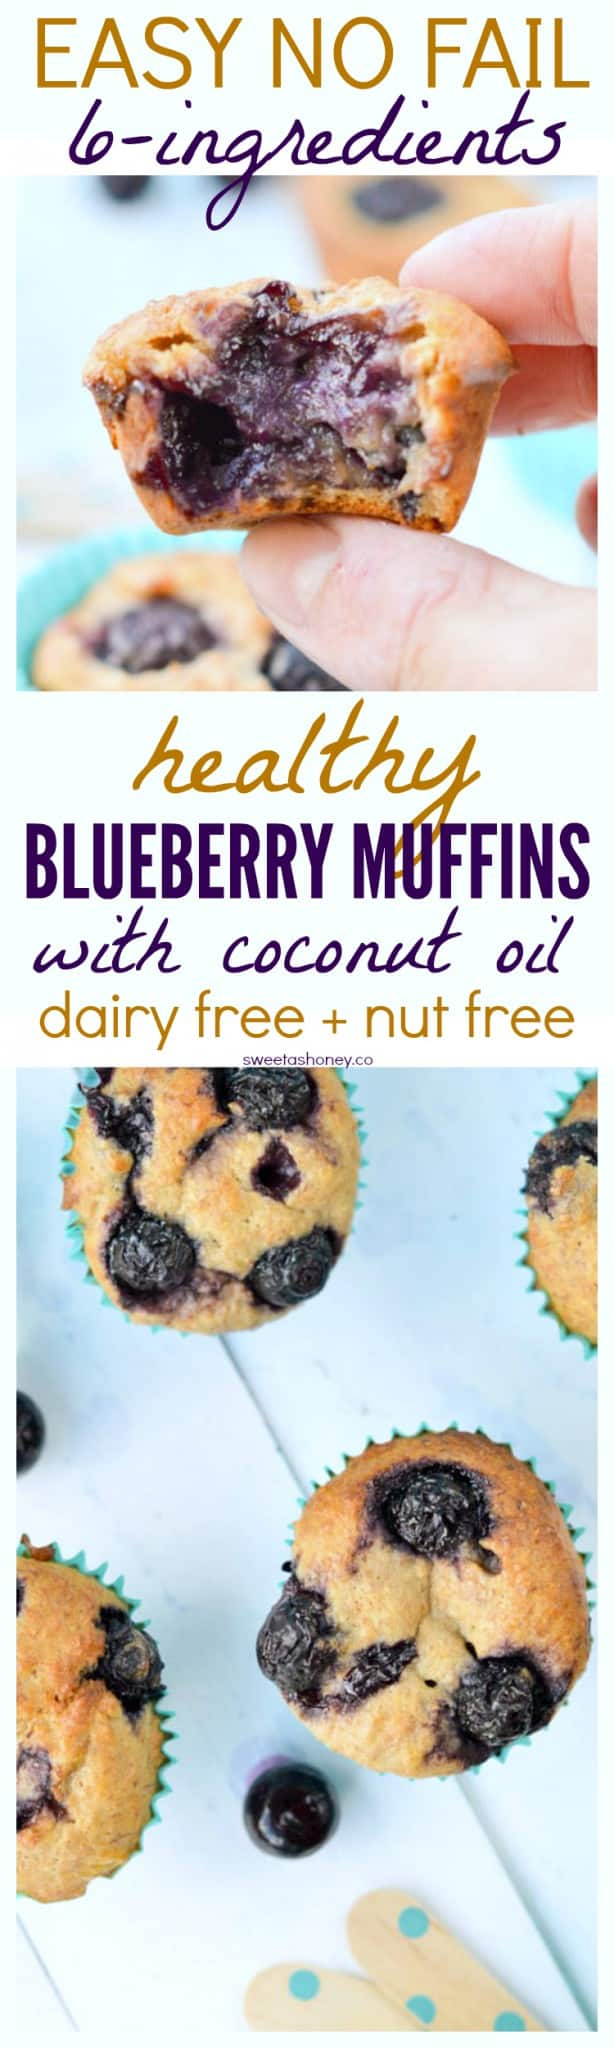 Healthy Whole Wheat Banana Blueberry Muffins